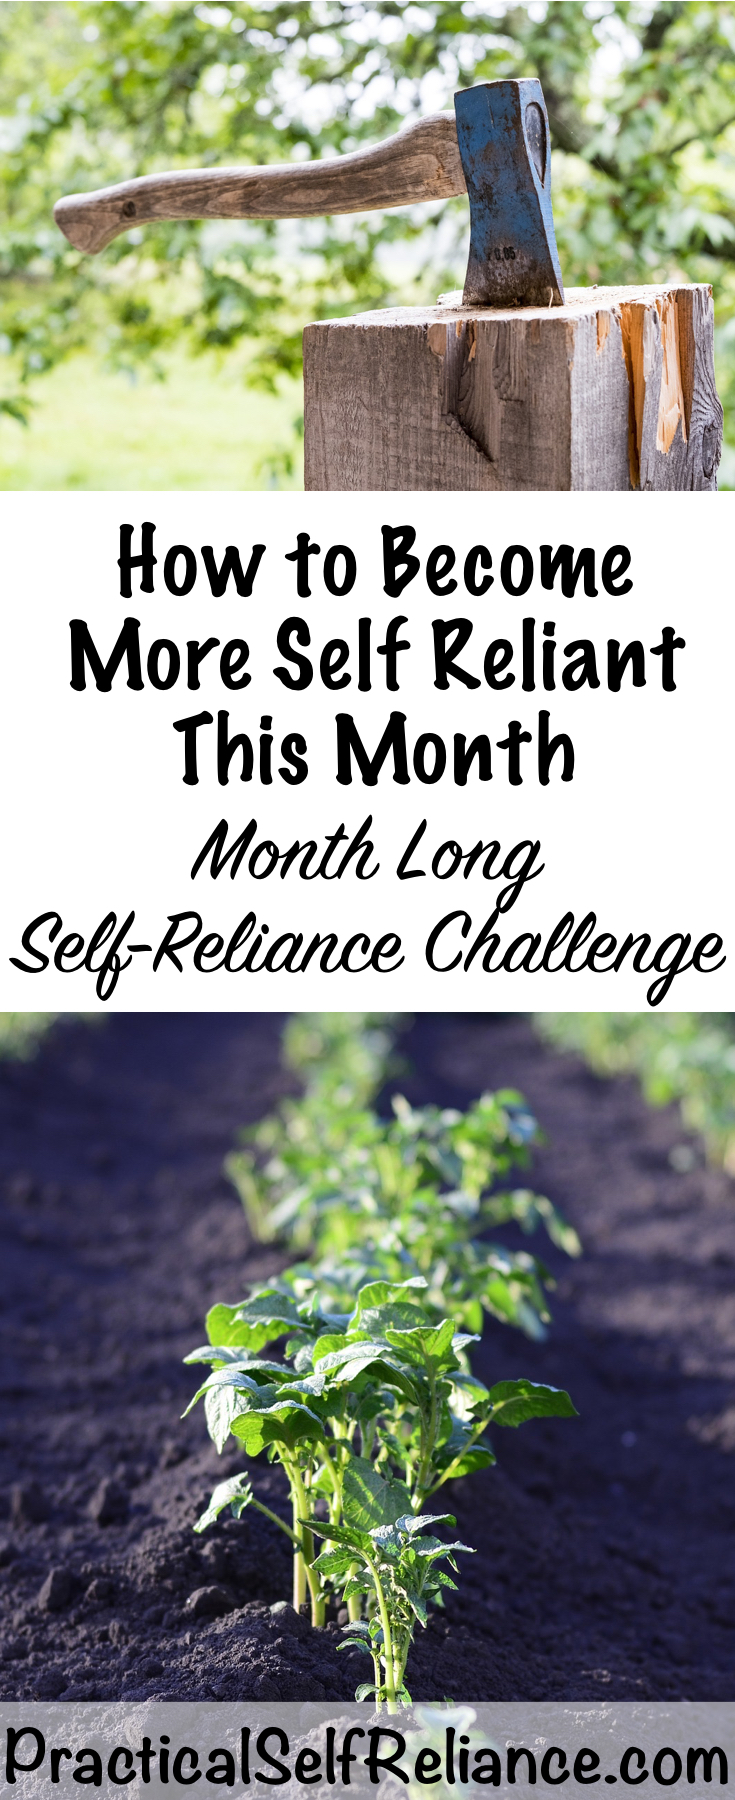 How to Become More Self Reliant This Month ~ Month Long Self Reliance Challenge